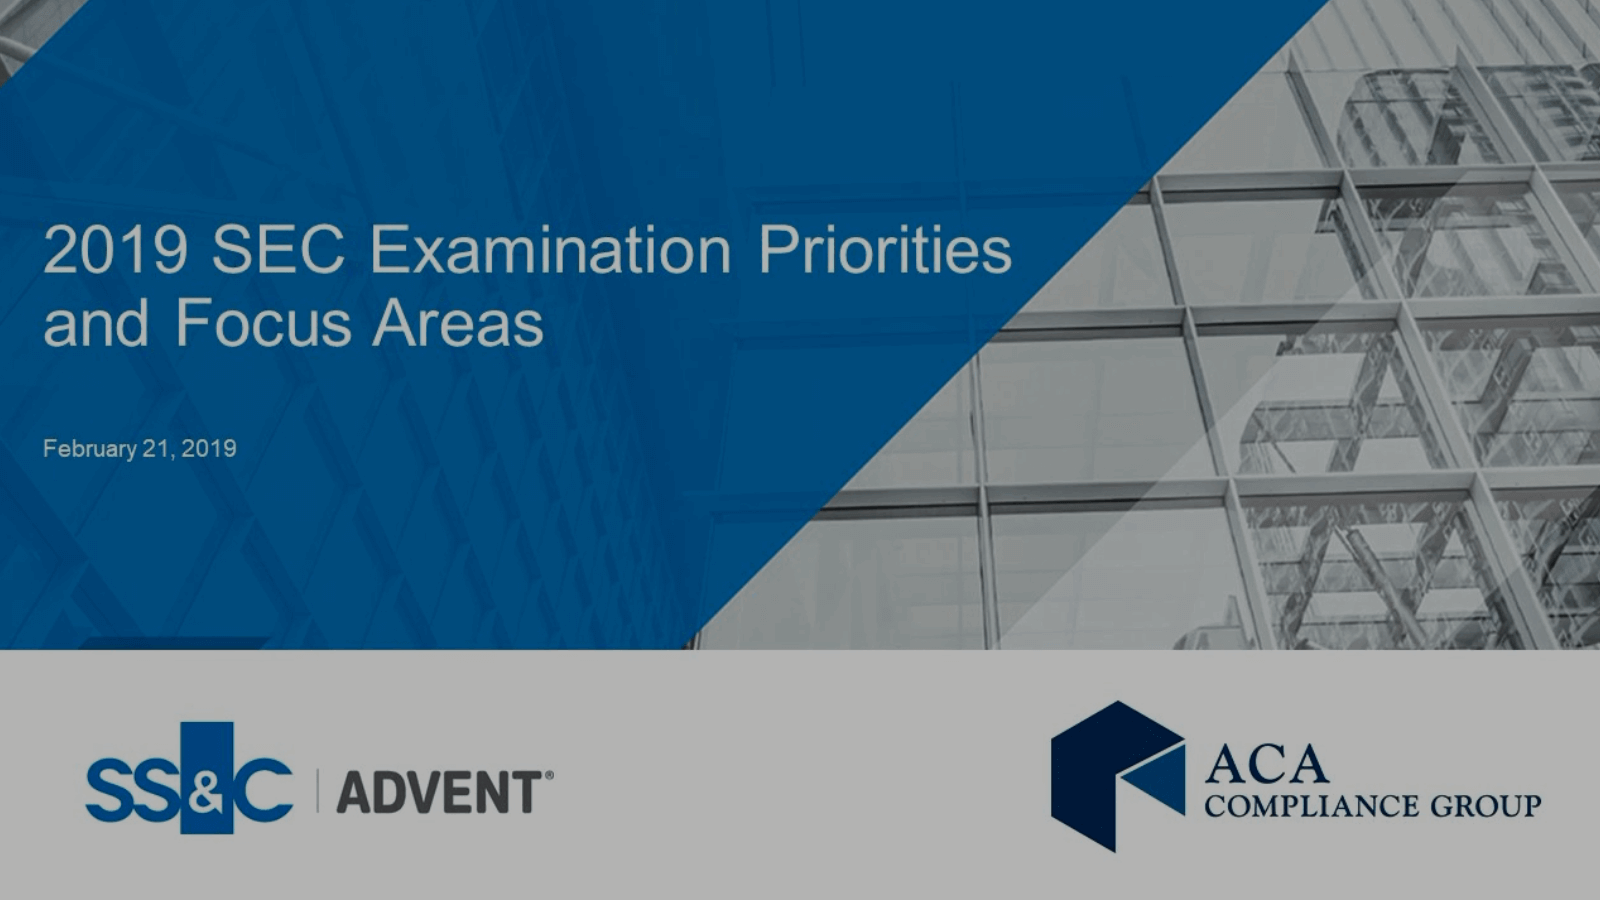 poster image for SEC examination priorities and focus areas for 2019